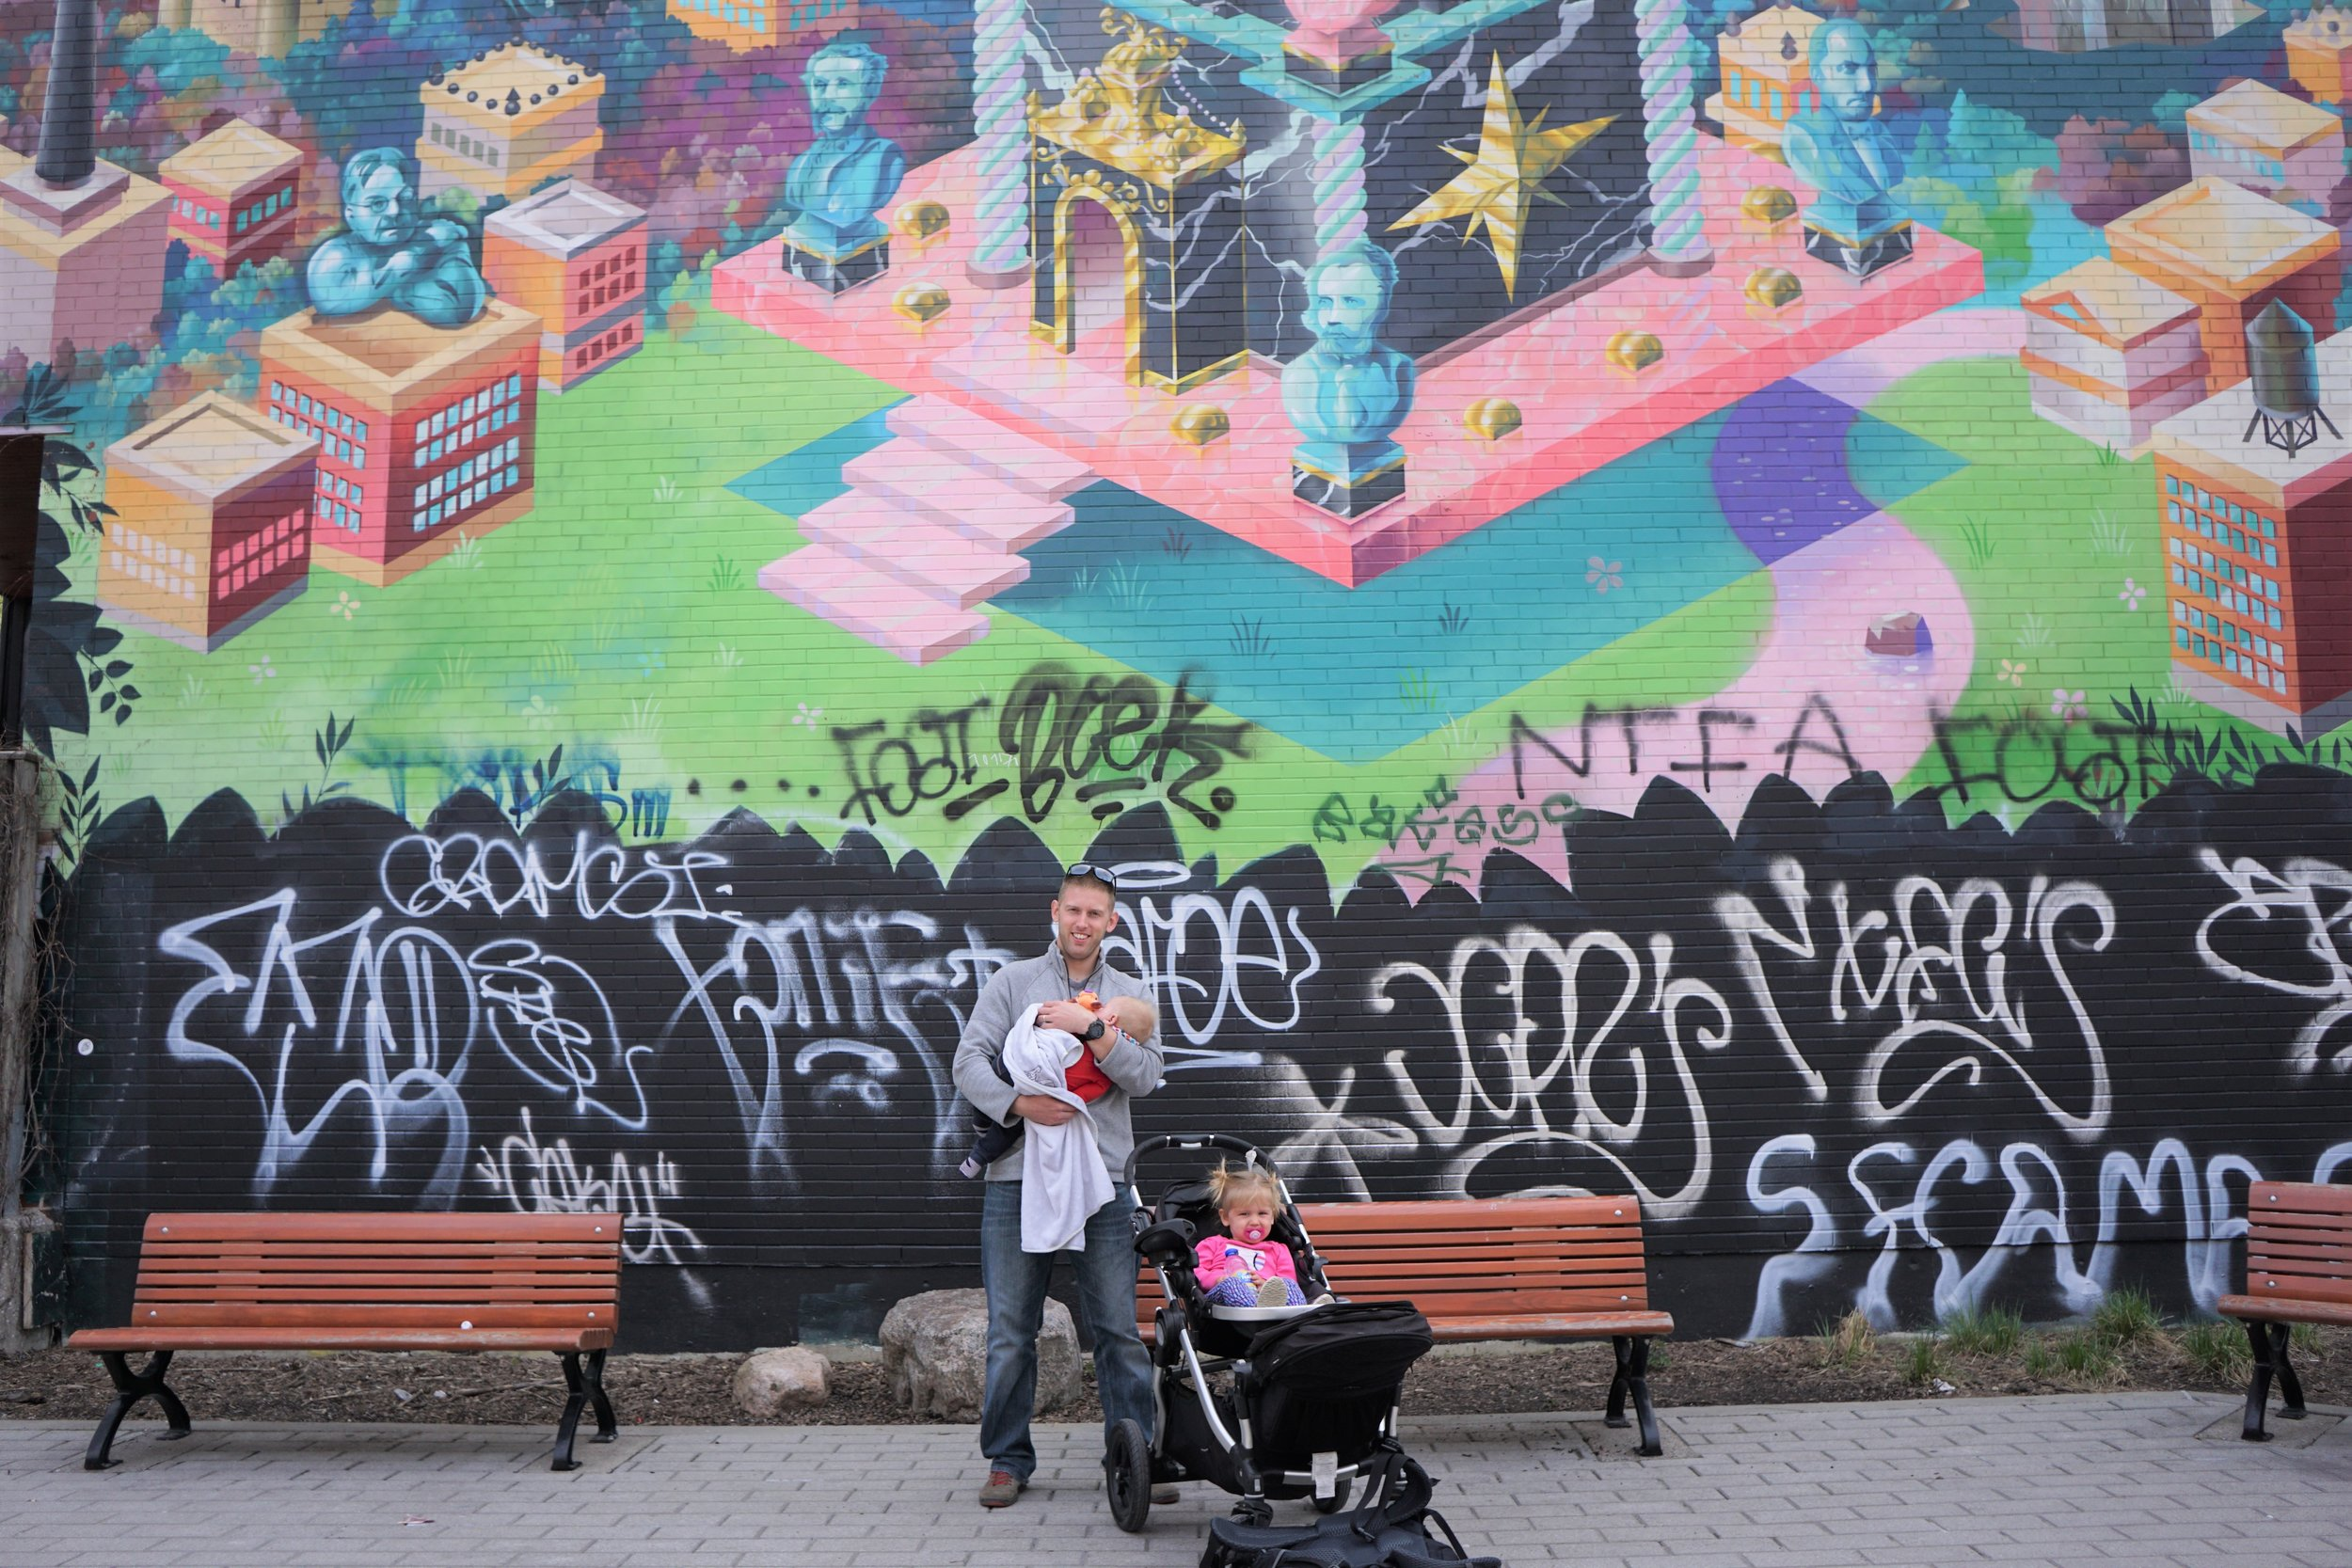 Montreal has More street Art than any other city we've visted